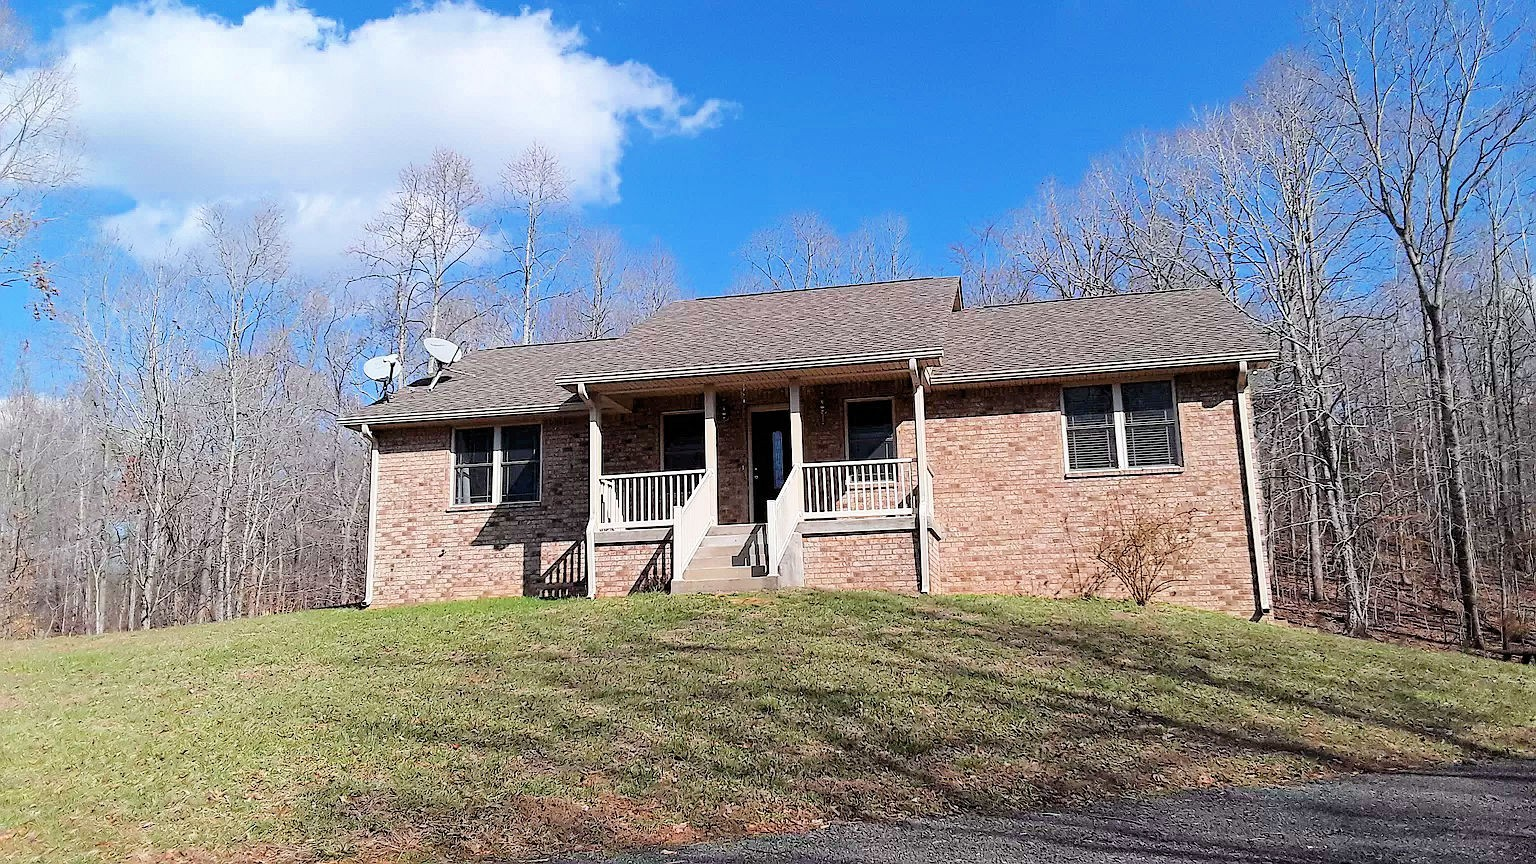 4555 Spring Valley Rd, Erin, TN 37061 - Erin, TN real estate listing